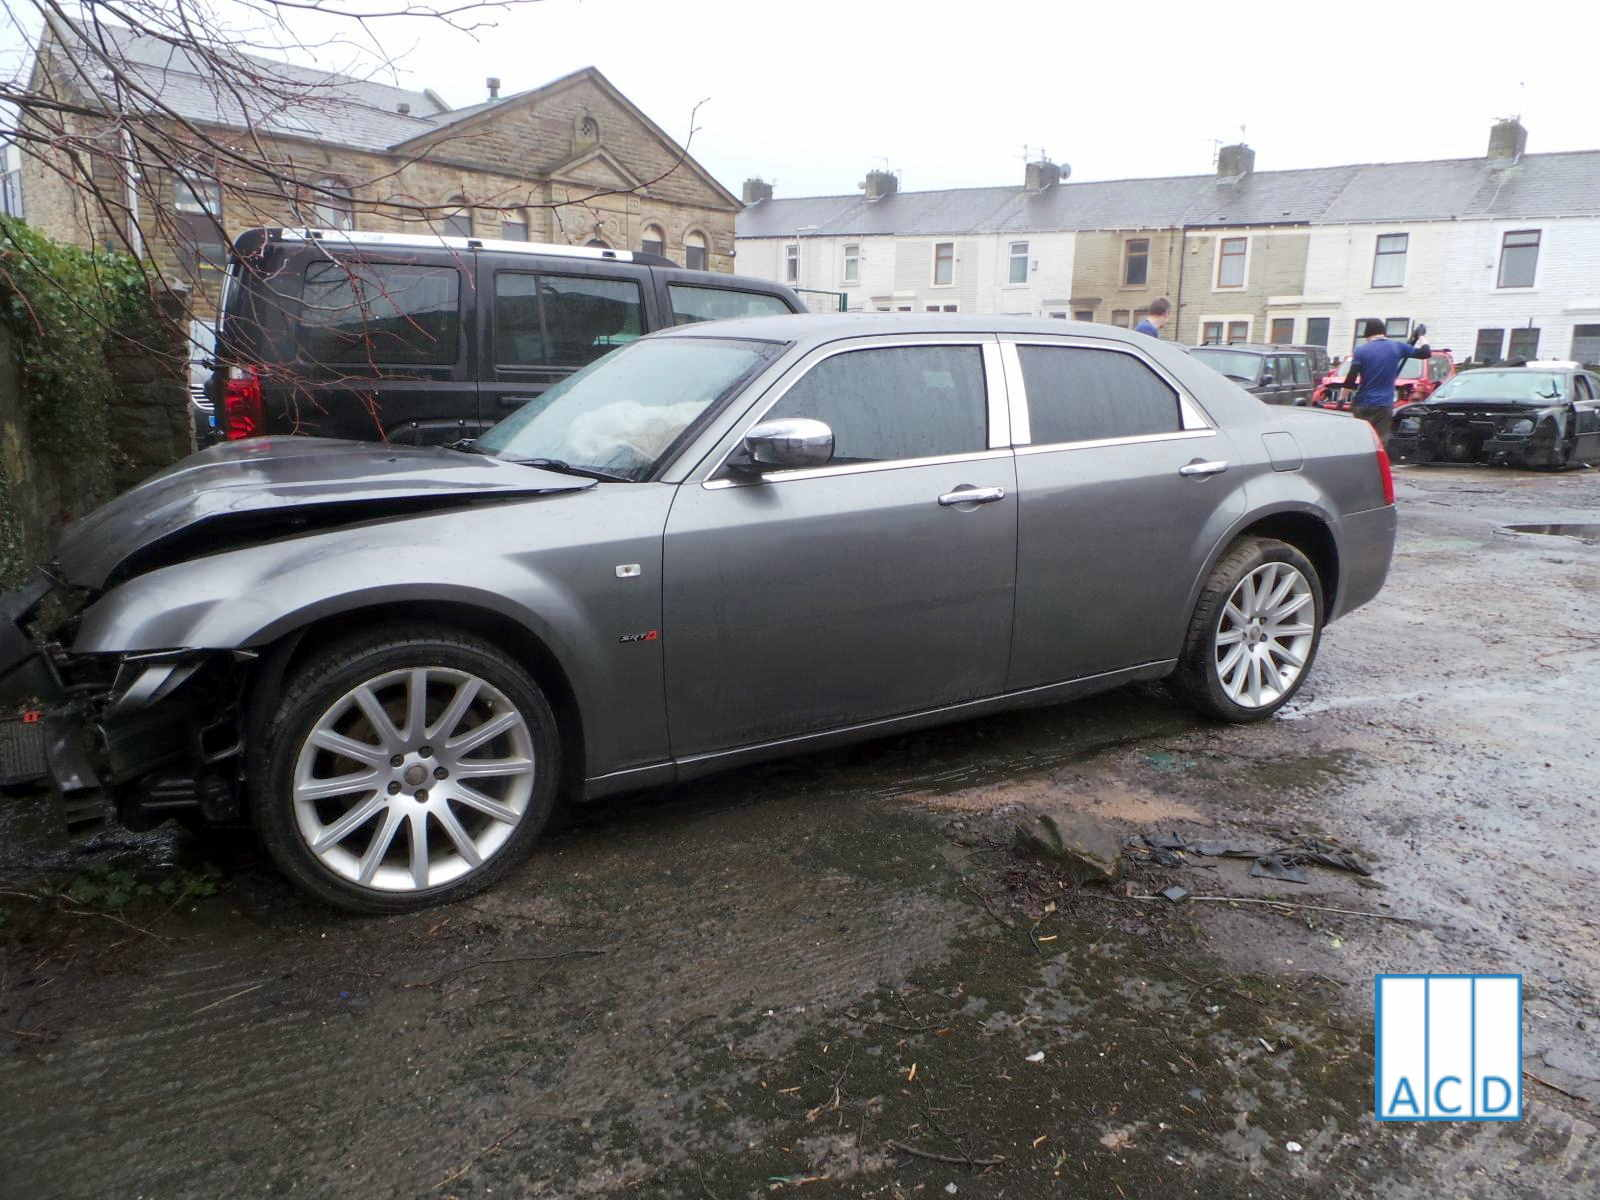 300C Spares for sale at ACD of Lancashire